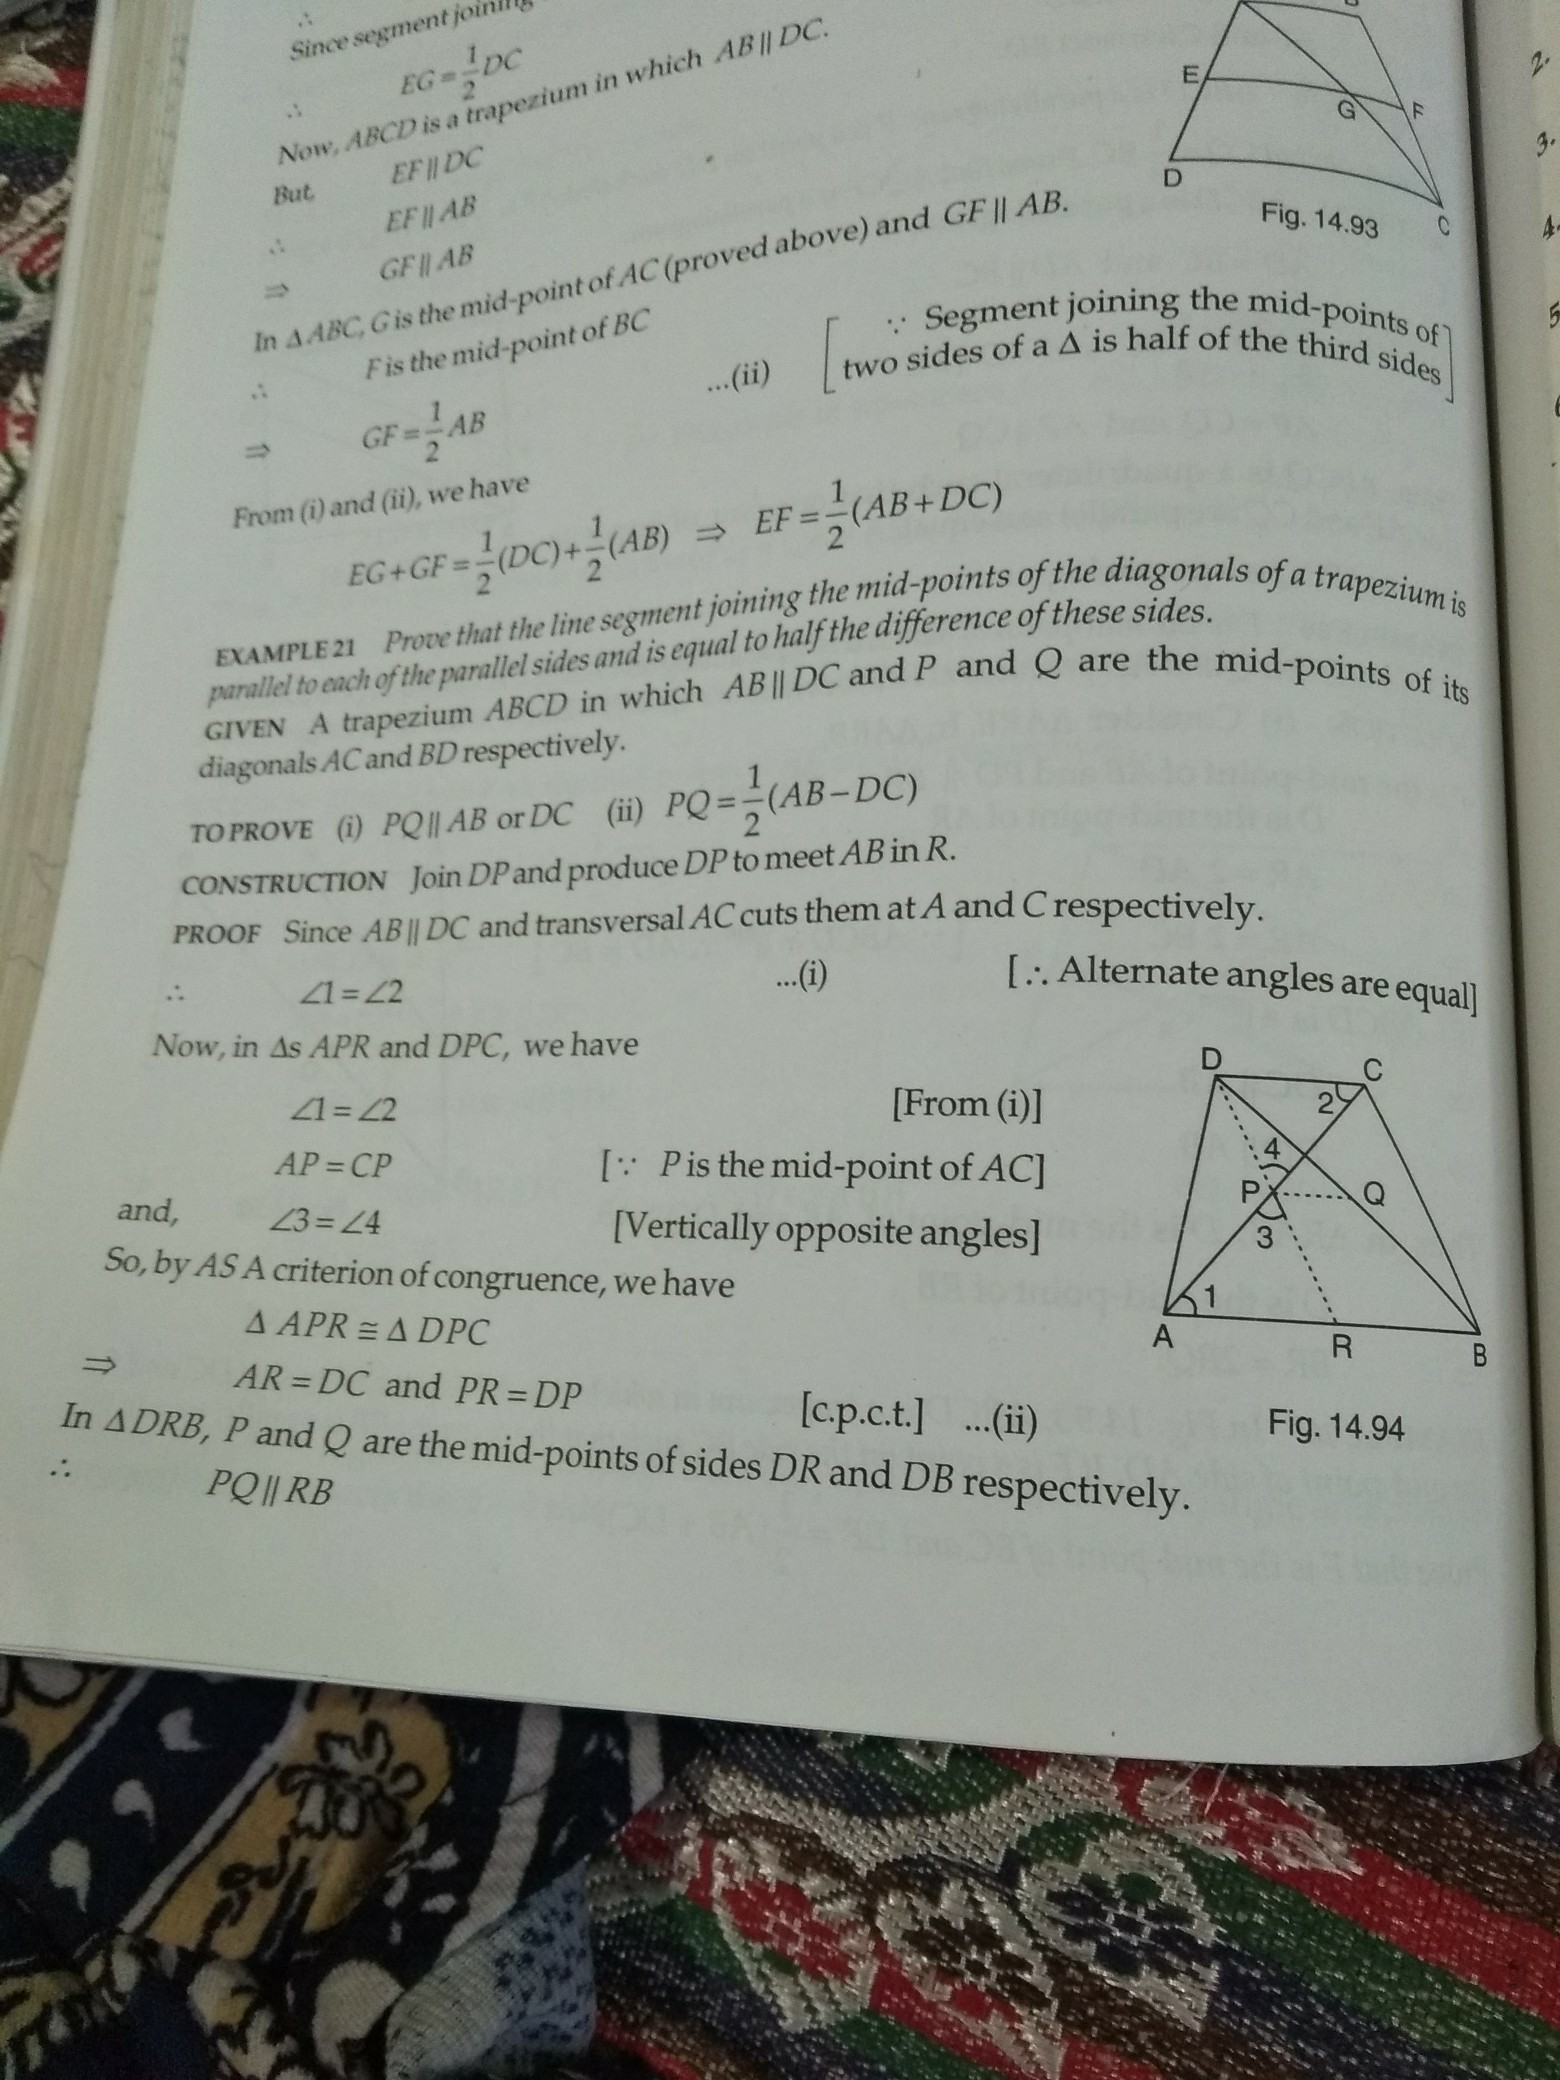 Prove That The Line Segment Joining The Midpoints Of The